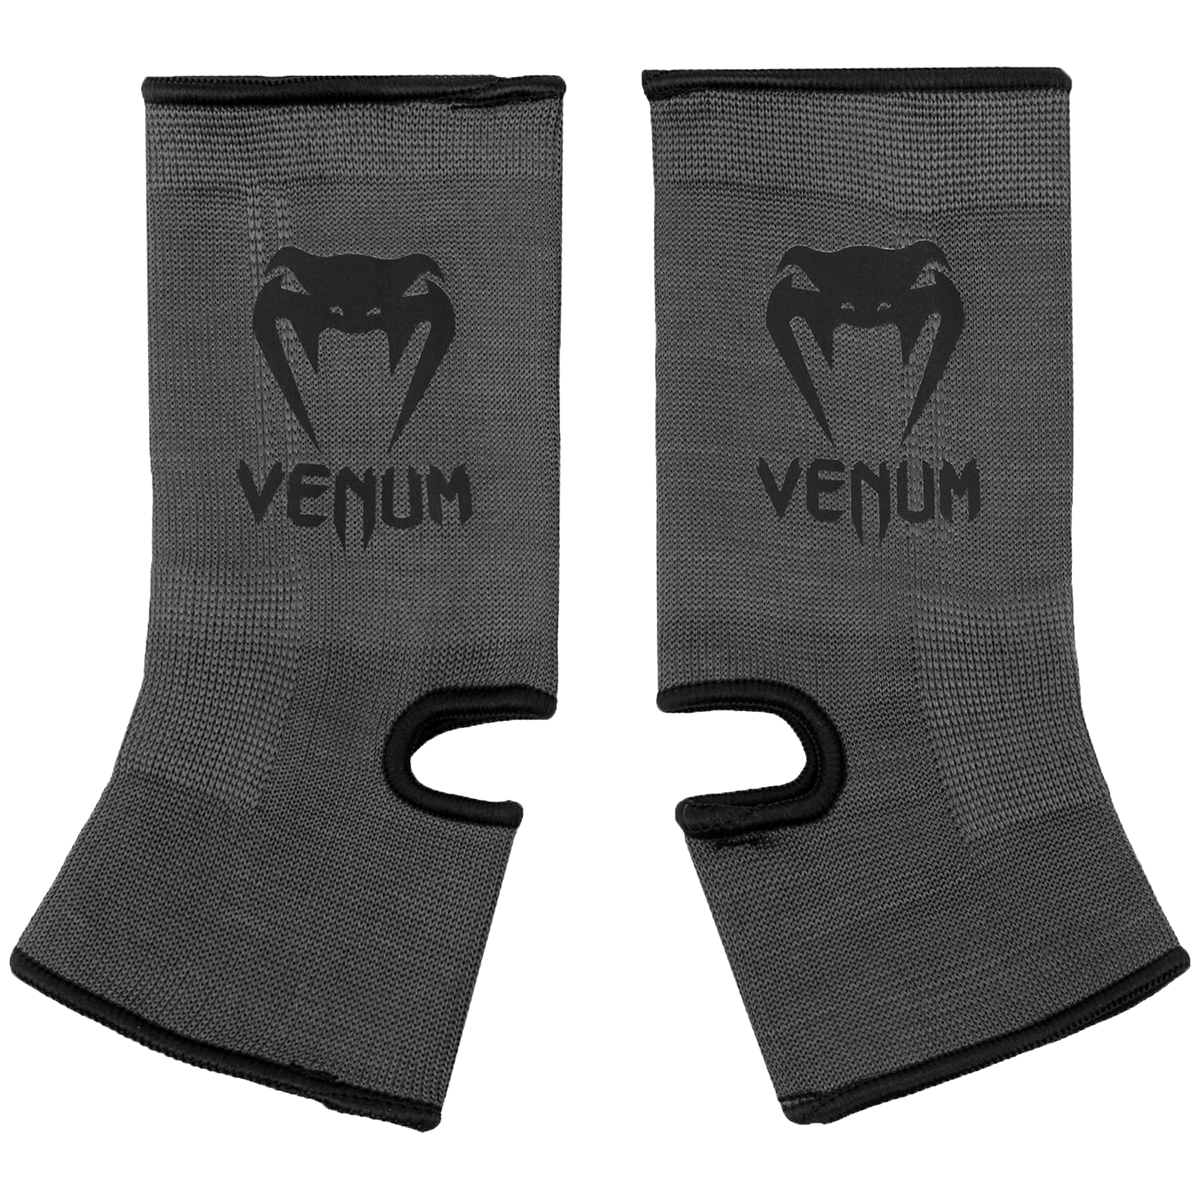 thumbnail 19 - Venum Kontact Slip-On MMA Pro Ankle Support Guards